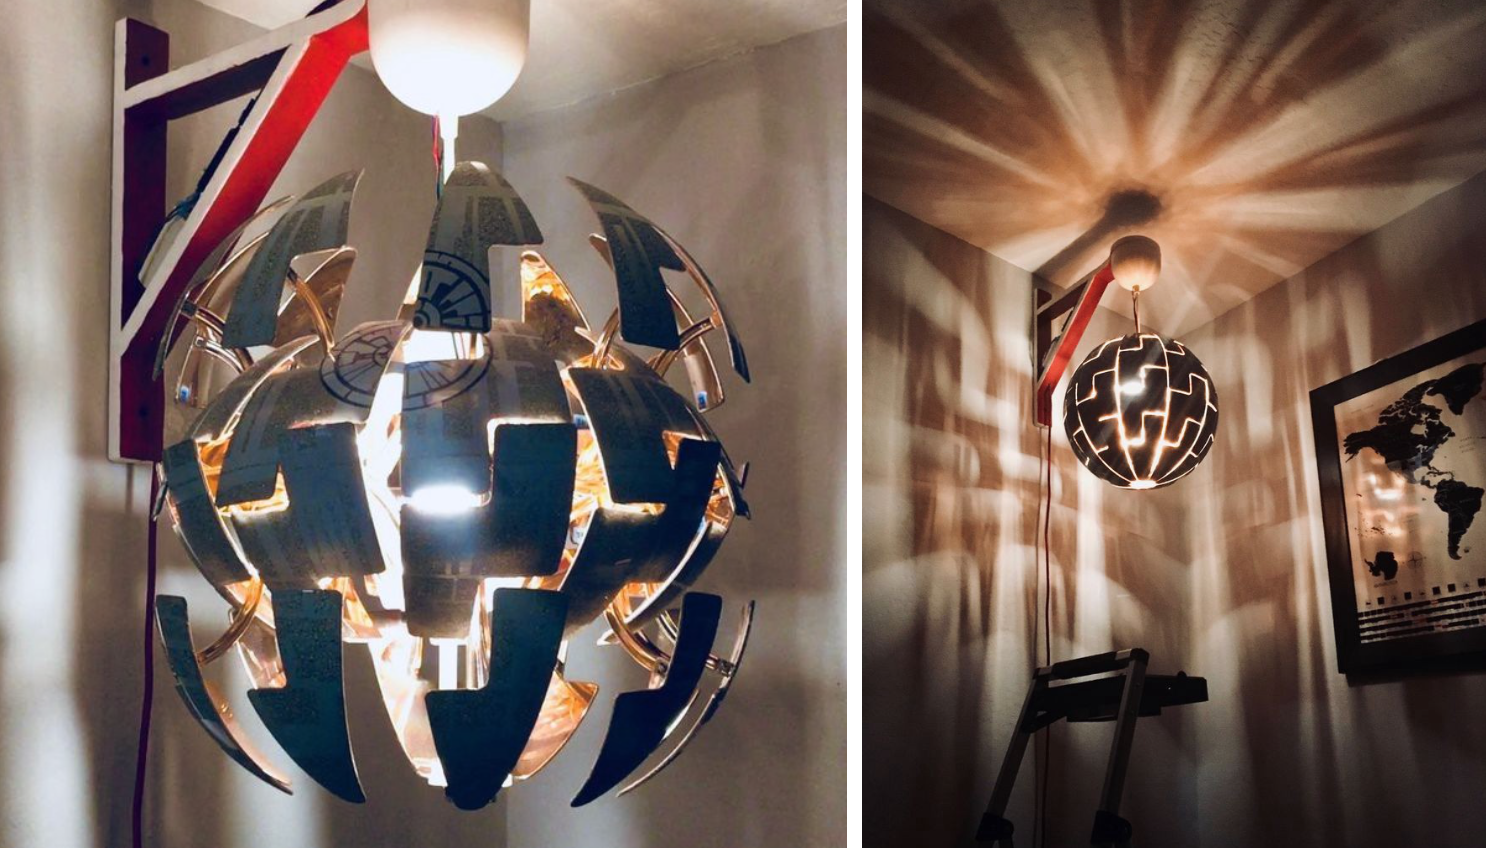 ikea lamp transformed into expanding death star hackster blog. Black Bedroom Furniture Sets. Home Design Ideas